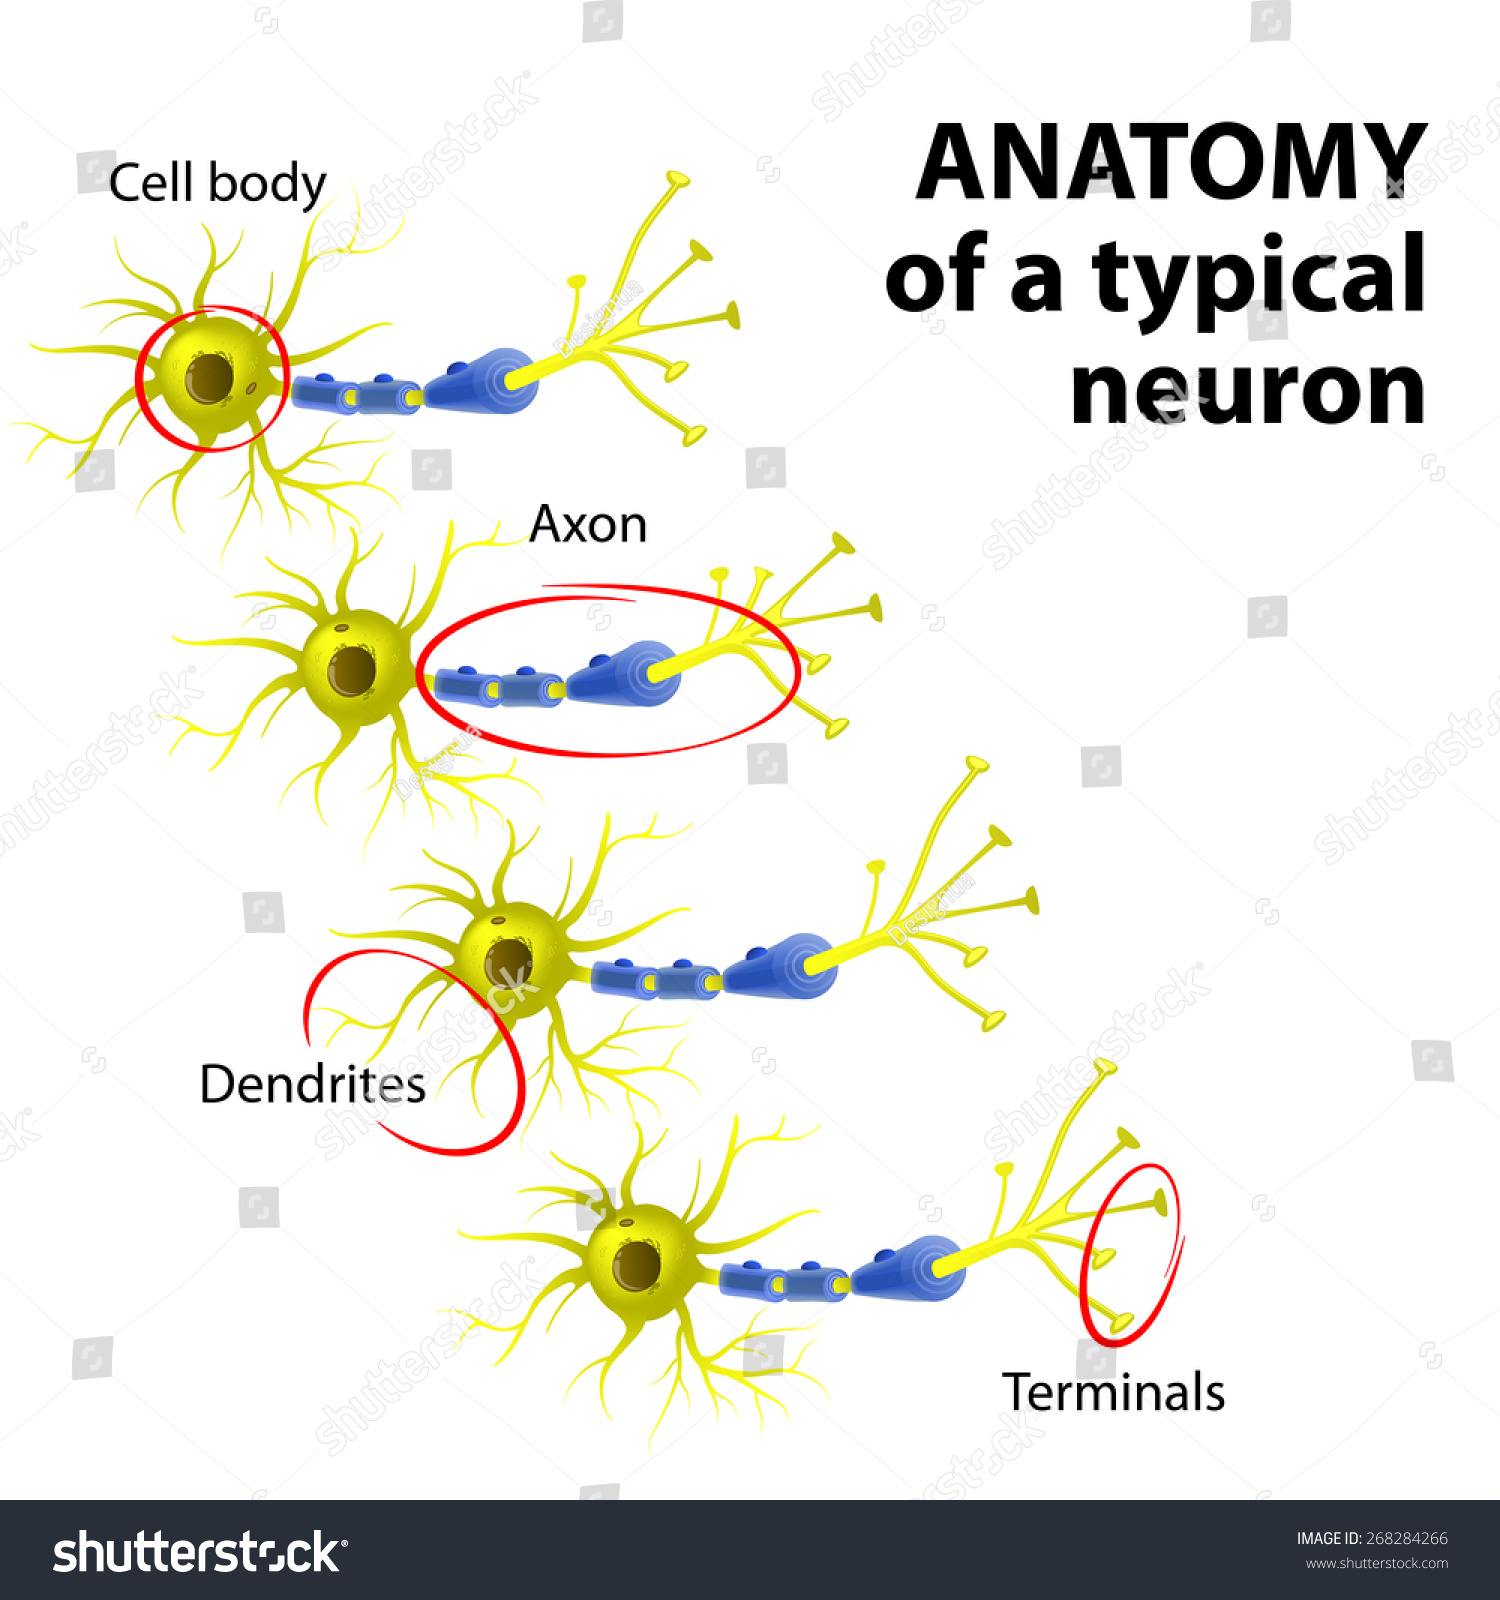 Anatomy Typical Multipolar Neuron Dendrite Cell Stock Illustration ...